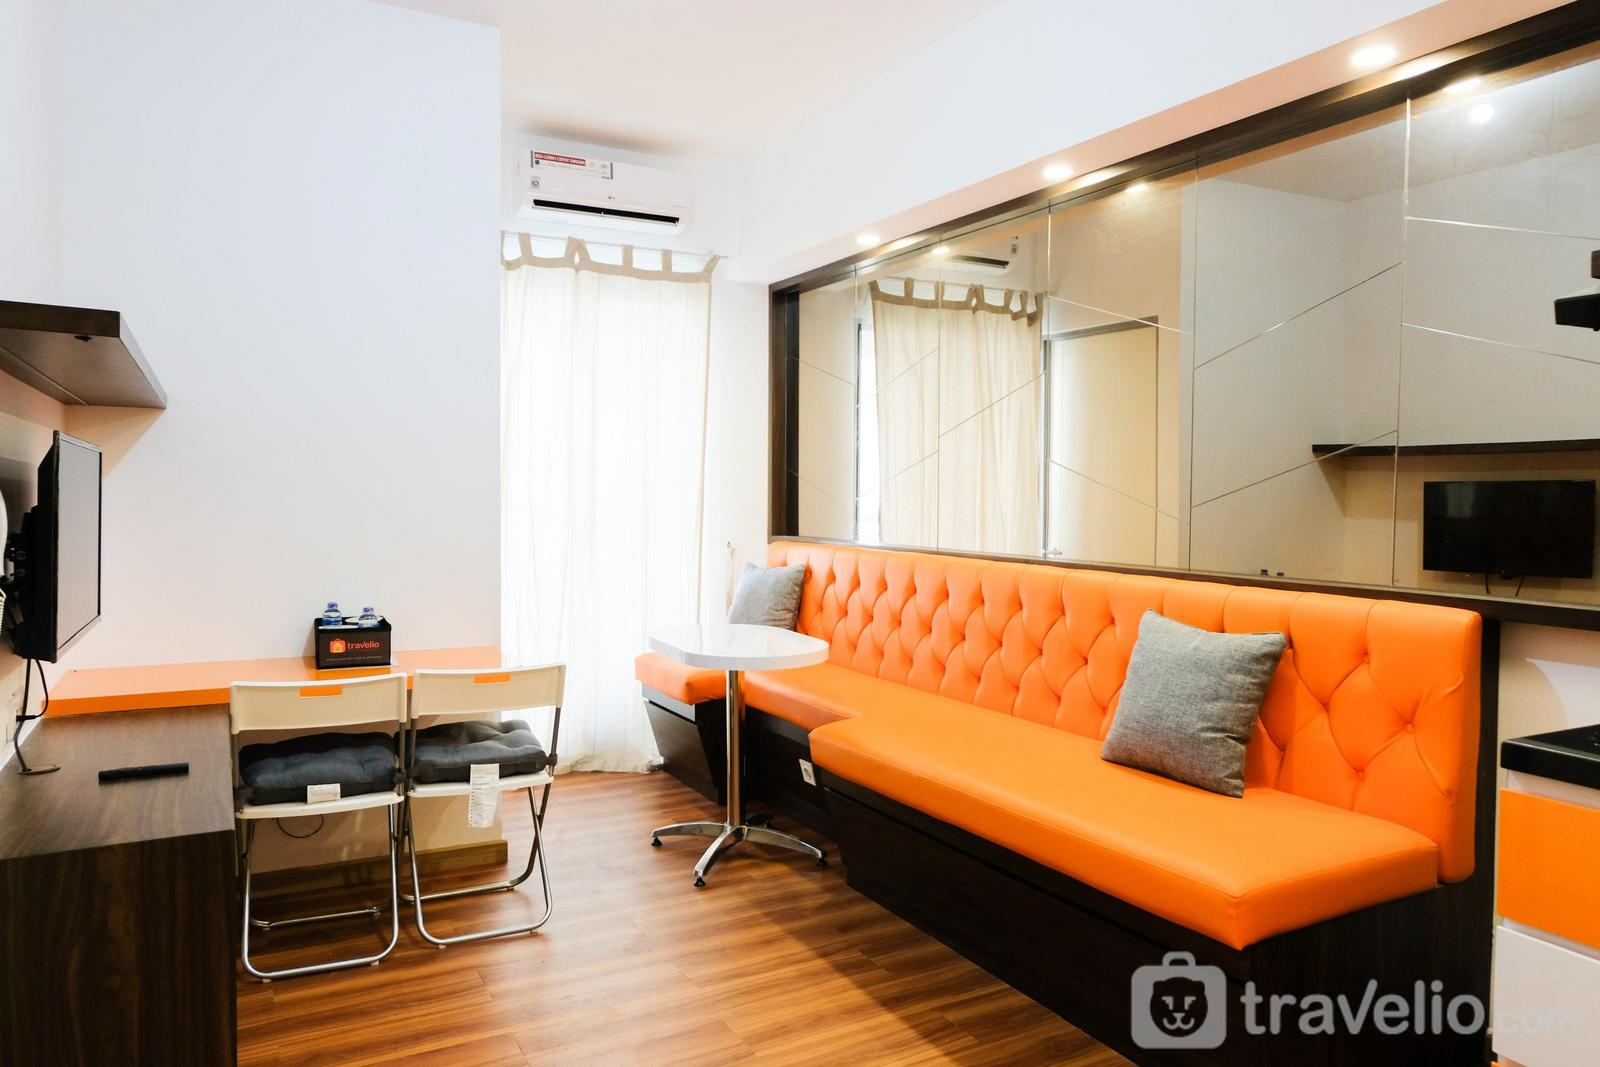 Apartemen M-Town Residence - Fully Furnished 2BR Apartment at M-Town Residence By Travelio